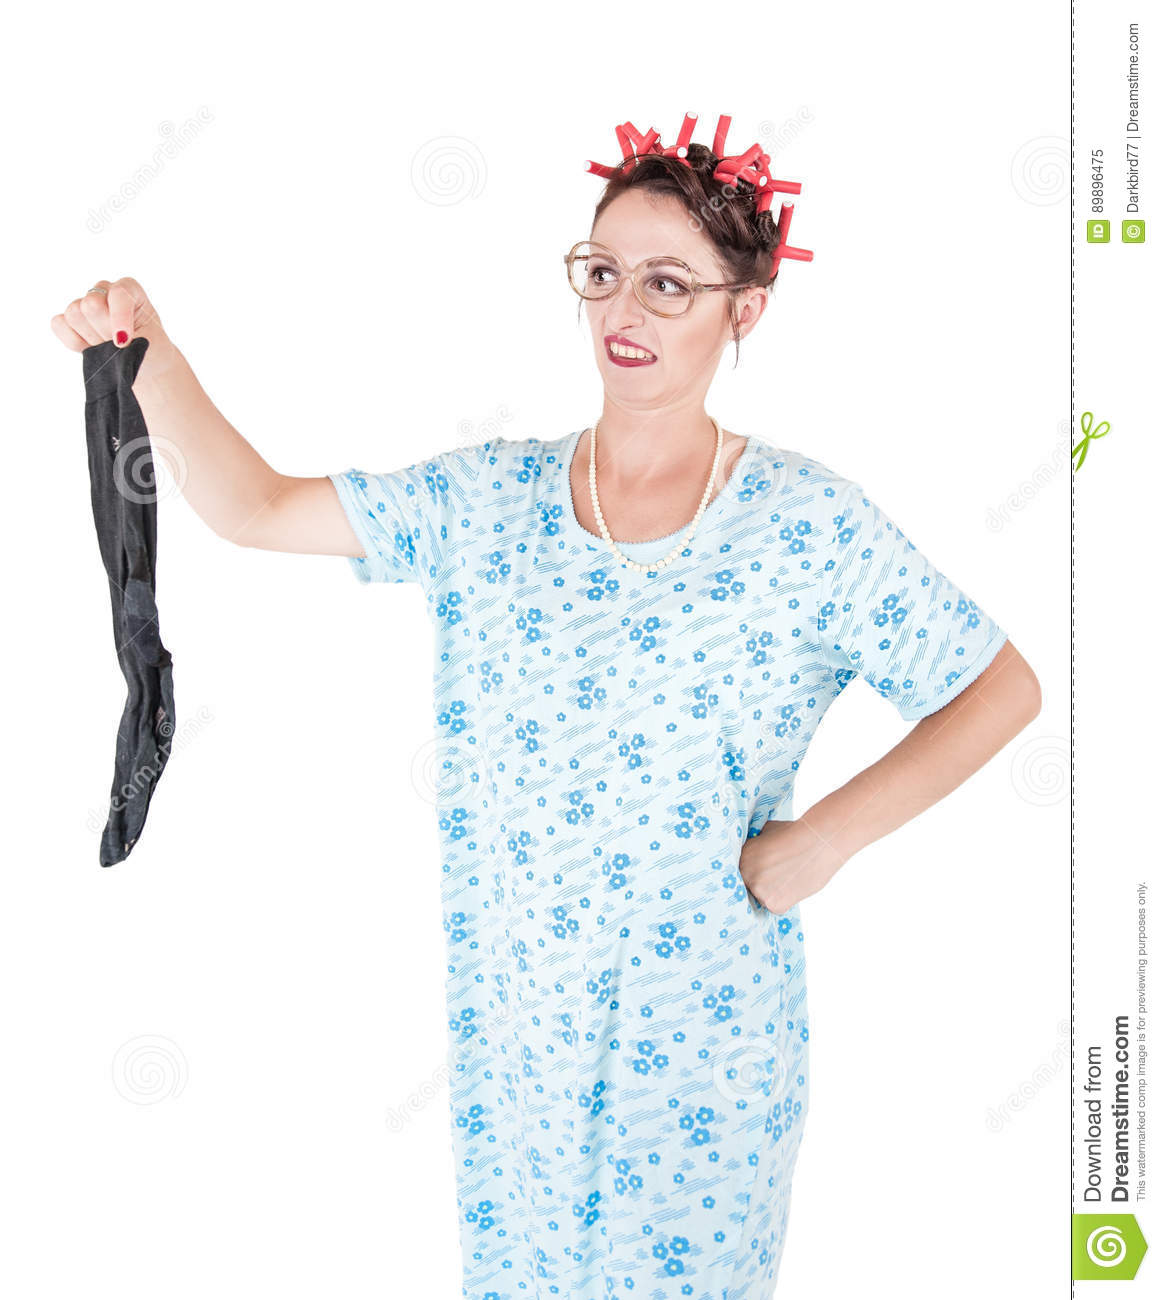 Perfect Hospital Gown Funny Model - Images for wedding gown ideas ...